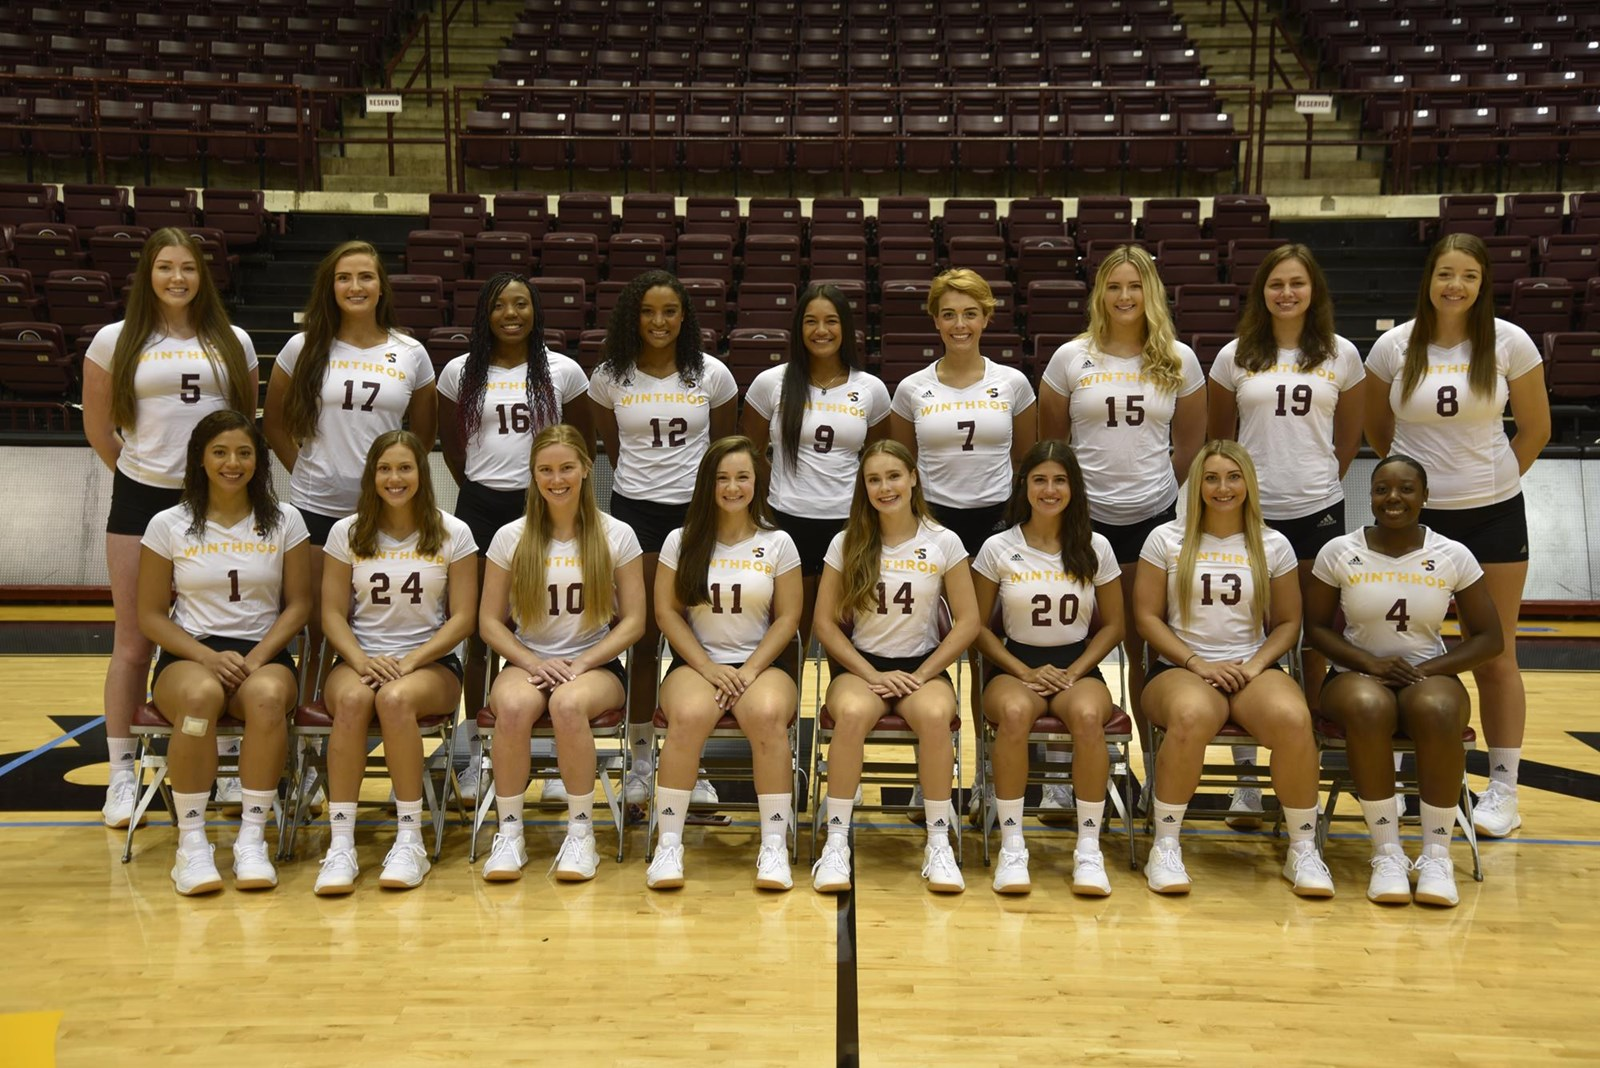 2019 Women S Volleyball Roster Winthrop University Athletics